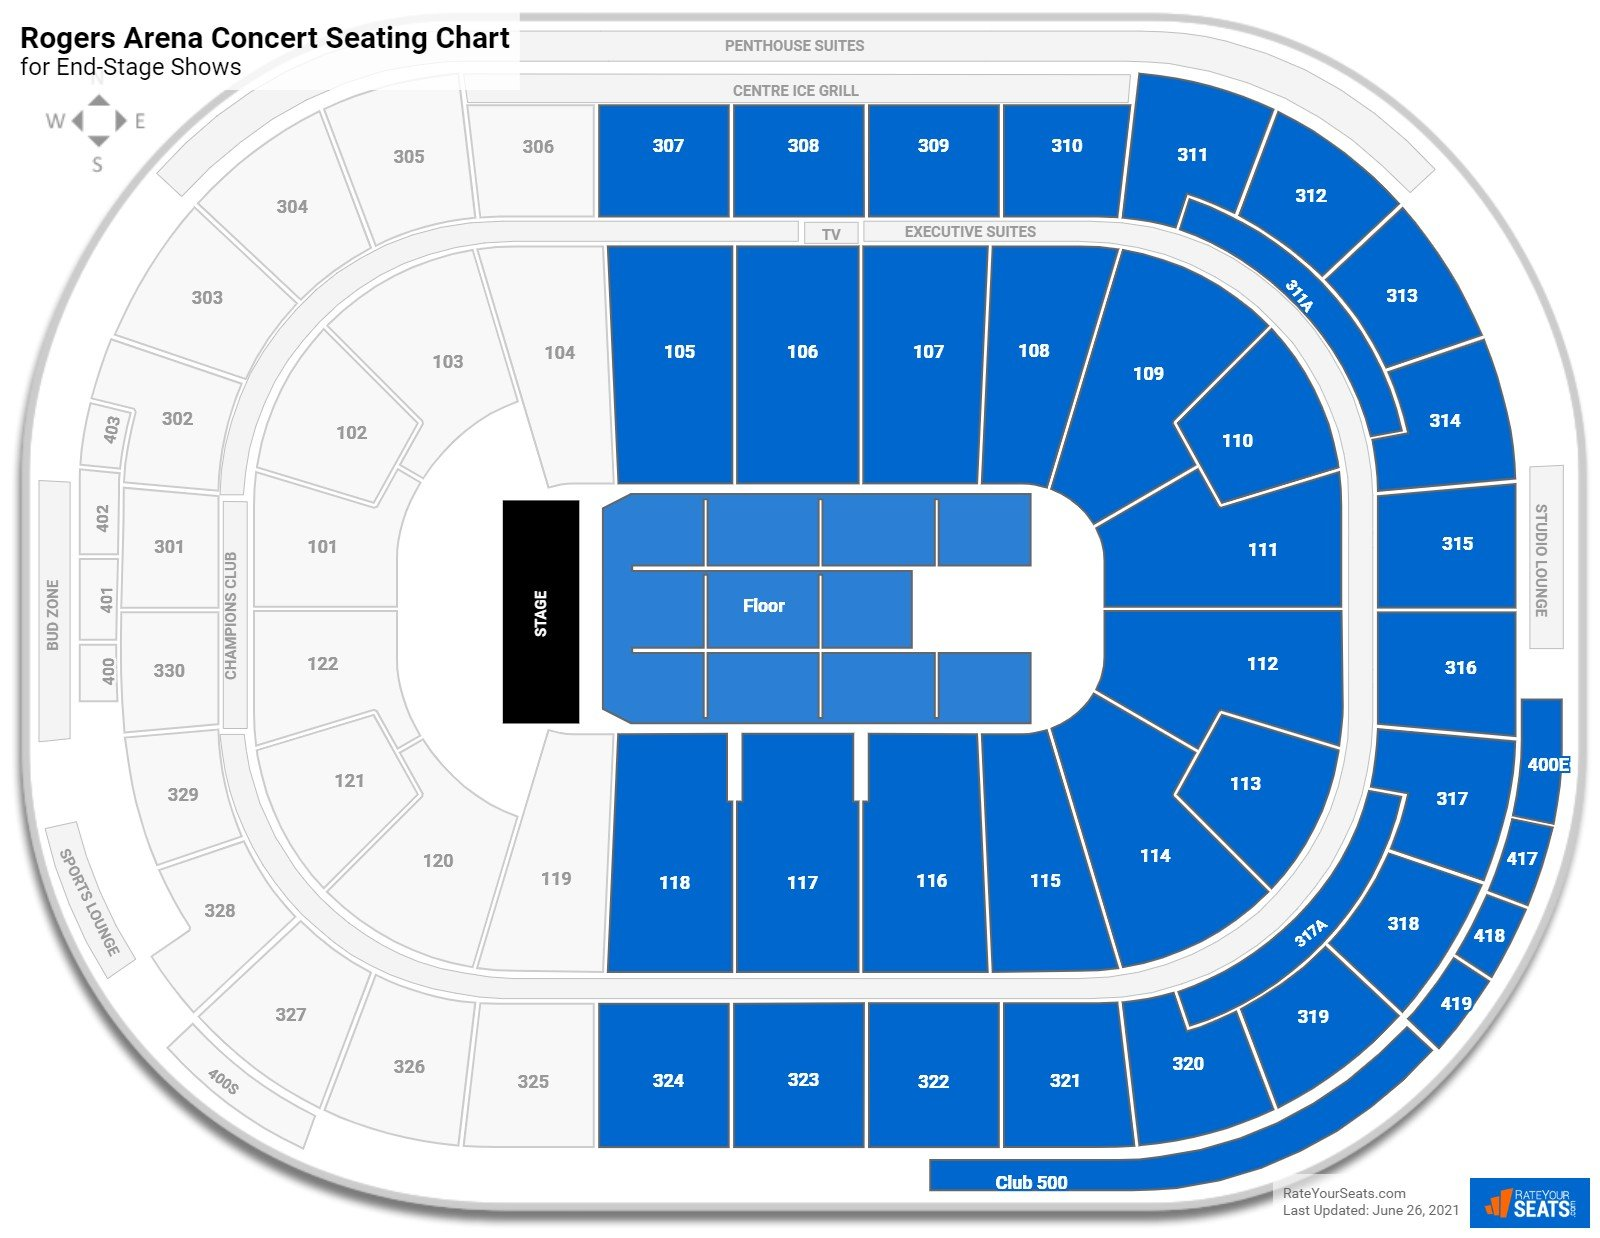 Rogers Arena Seating Chart for Concerts